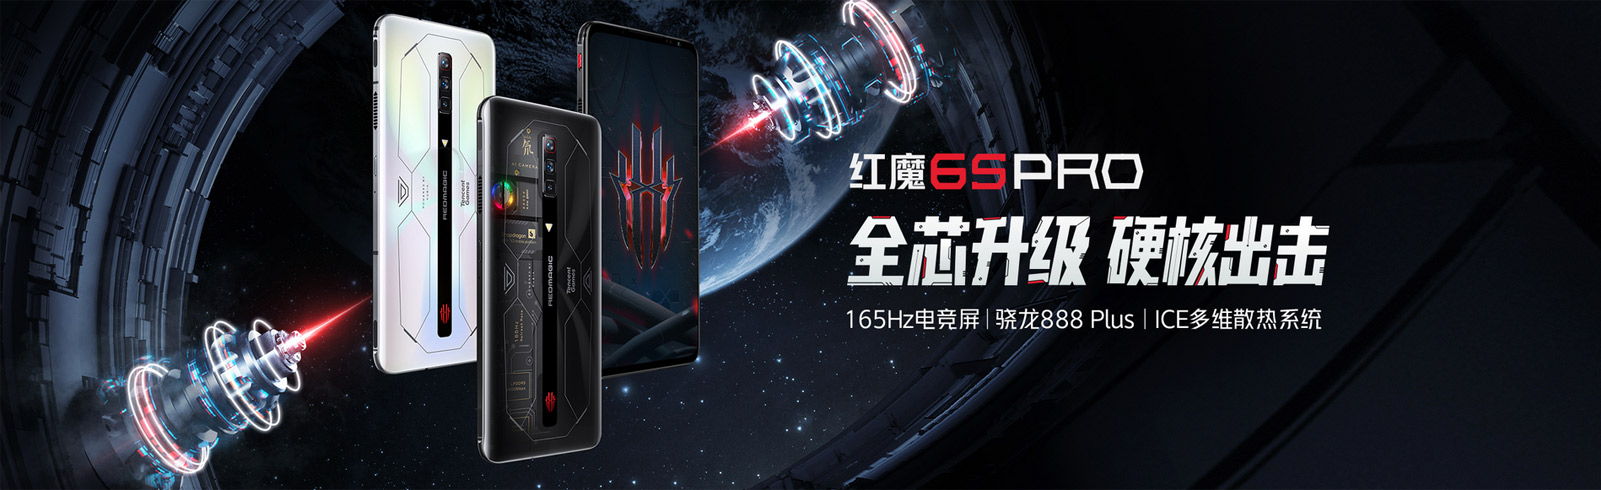 nubia unveils the Red Magic 6S Pro based on a Snapdragon 888+ chipset